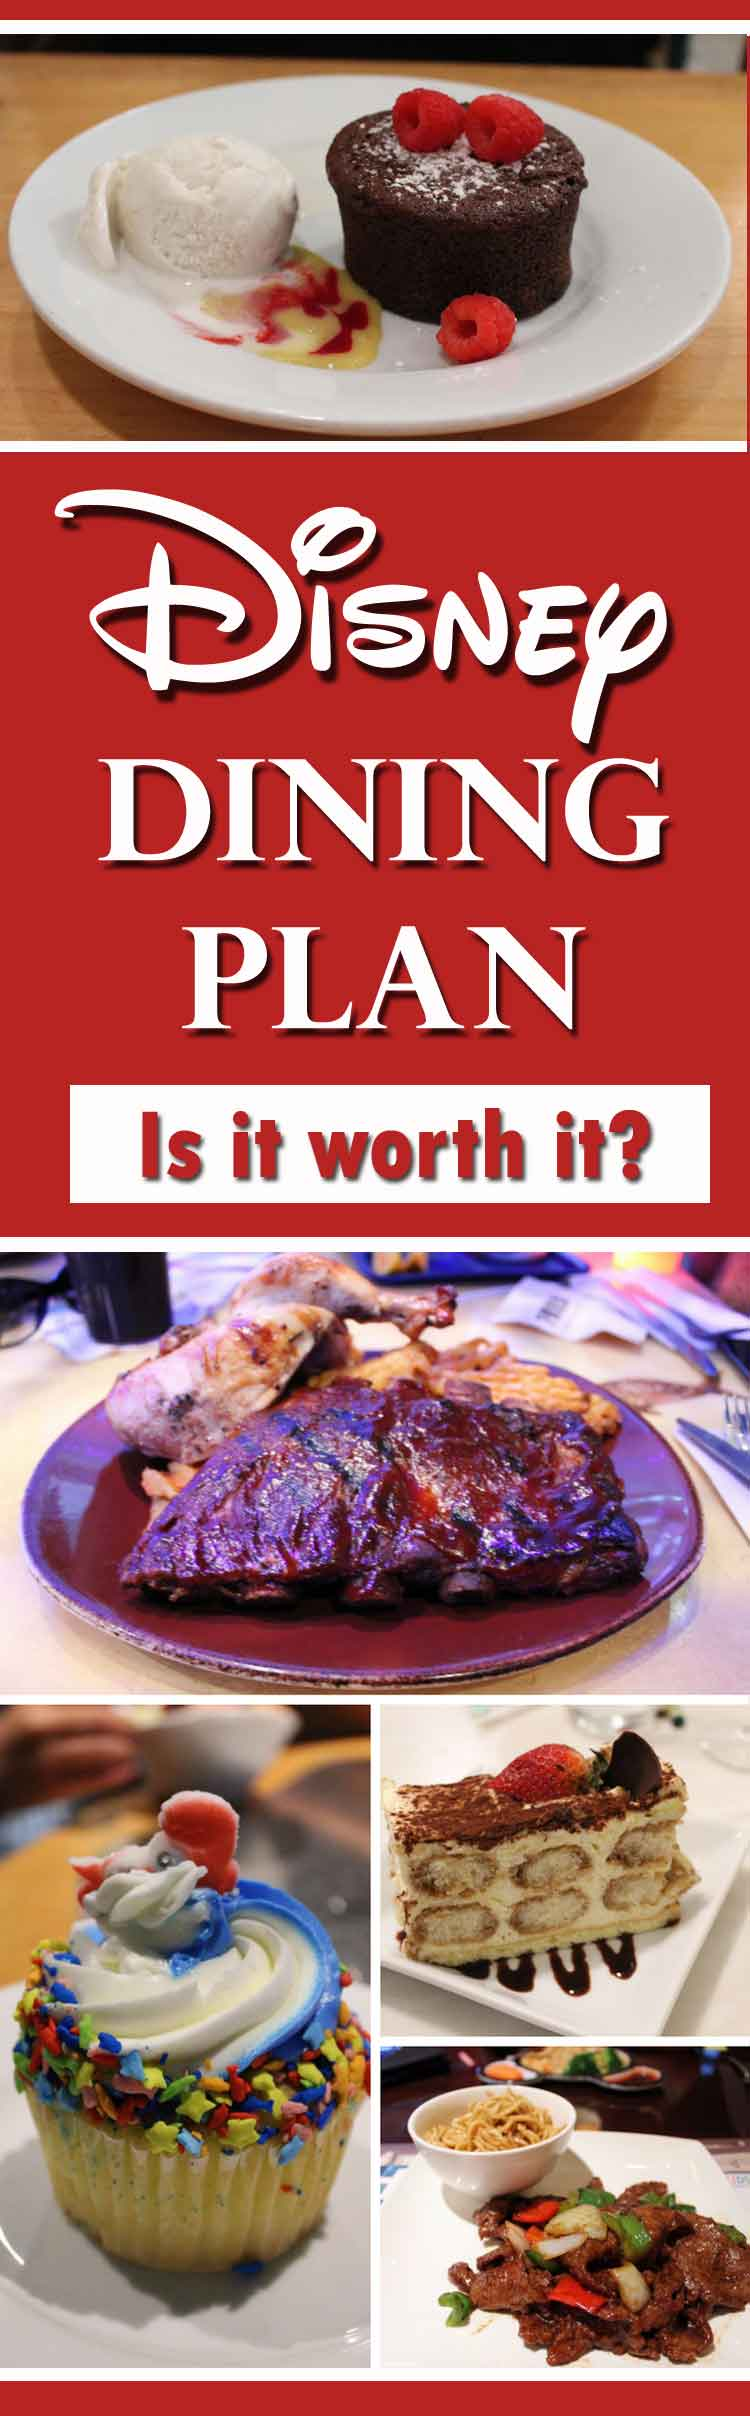 Disney Dining Plan What 39 S Included And Is It Worth It